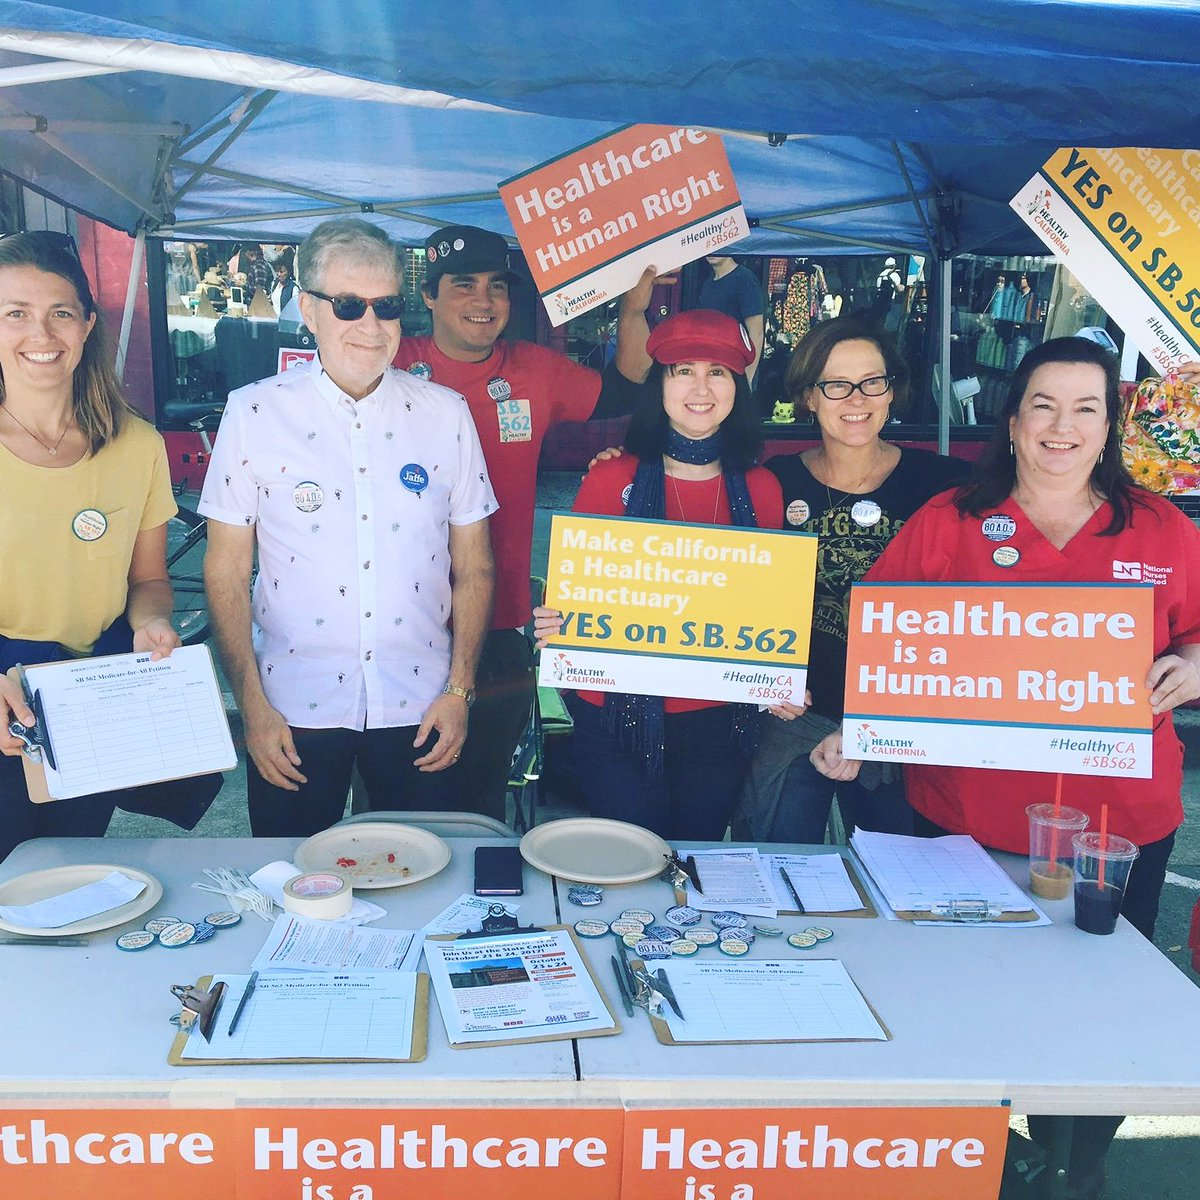 Day of action for SB562 single payer. #medicareforall https://t.co/lKh...